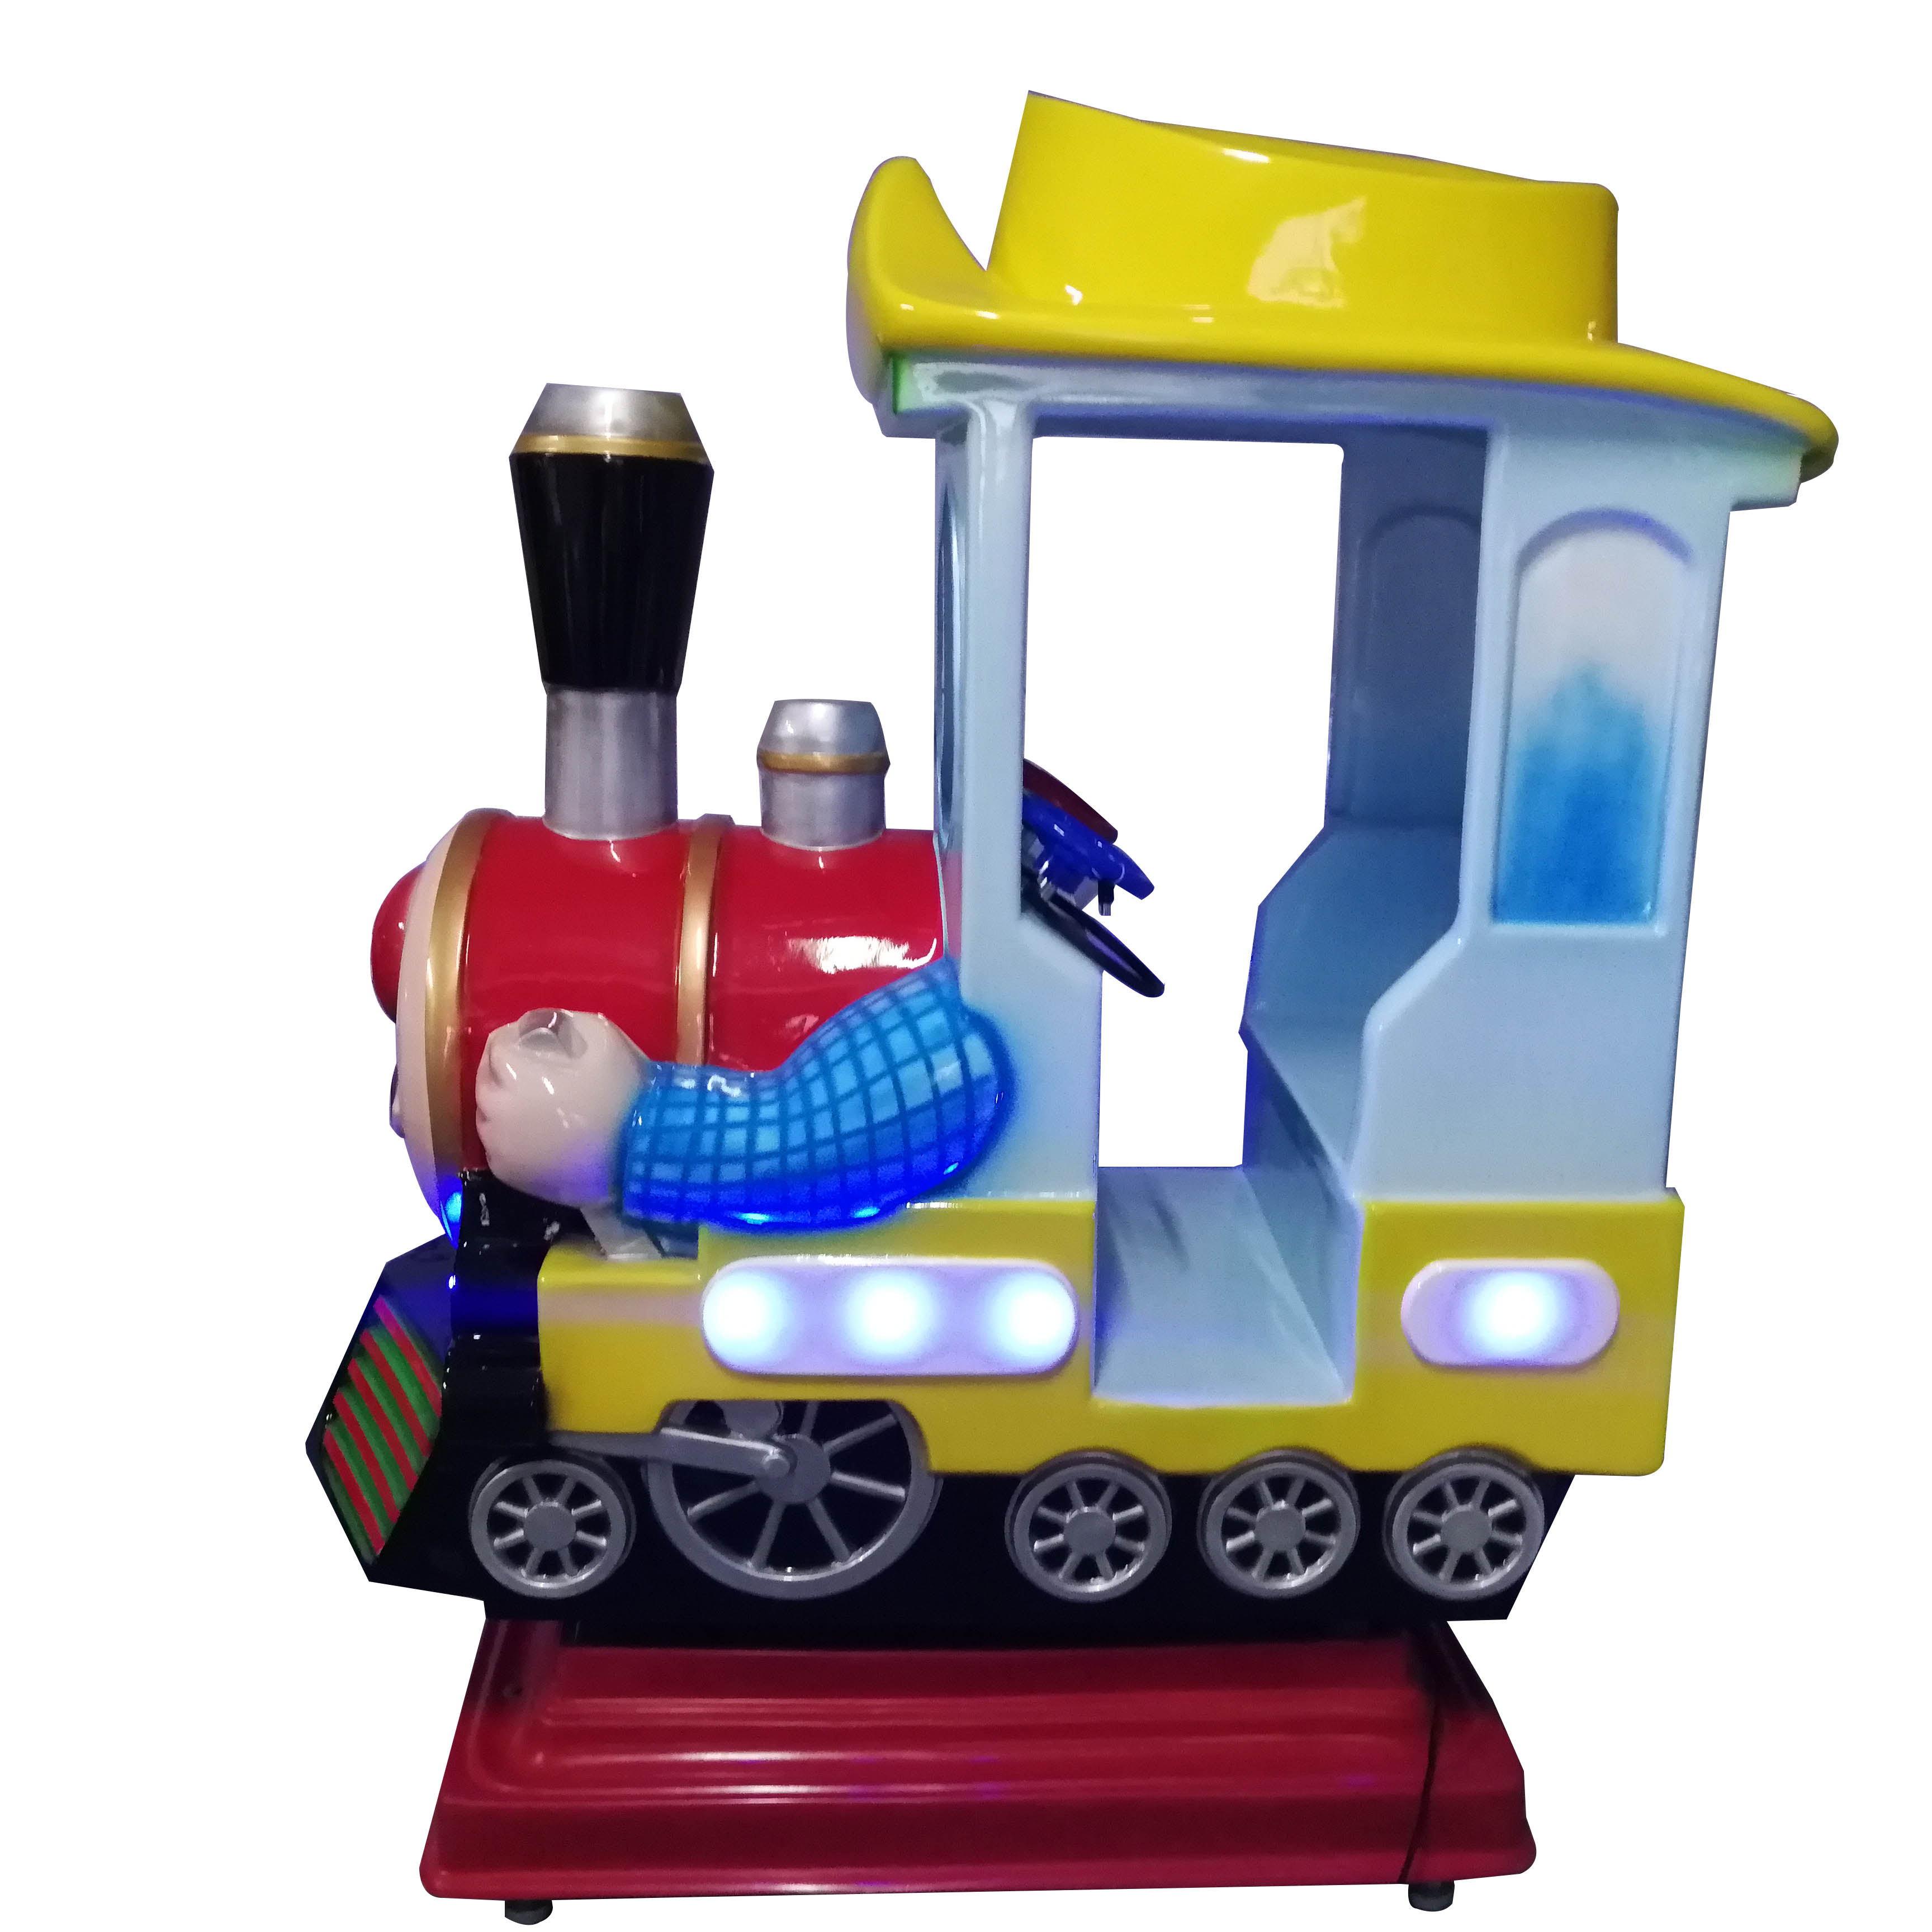 Hotselling indoor coin operated children's car machine Sam Car for sale